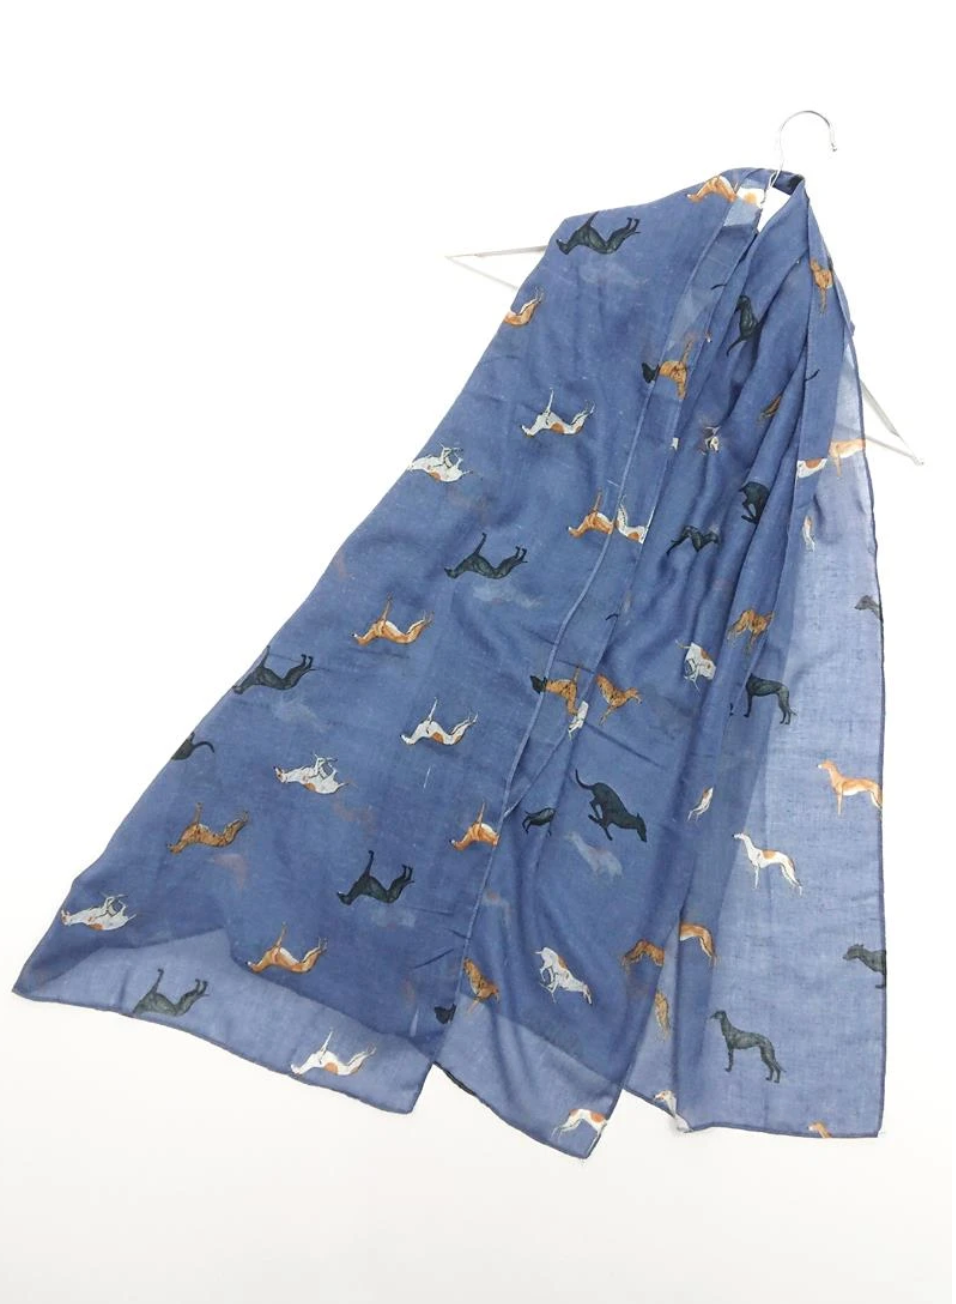 Greyhound Dog Scarf - Denim Blue